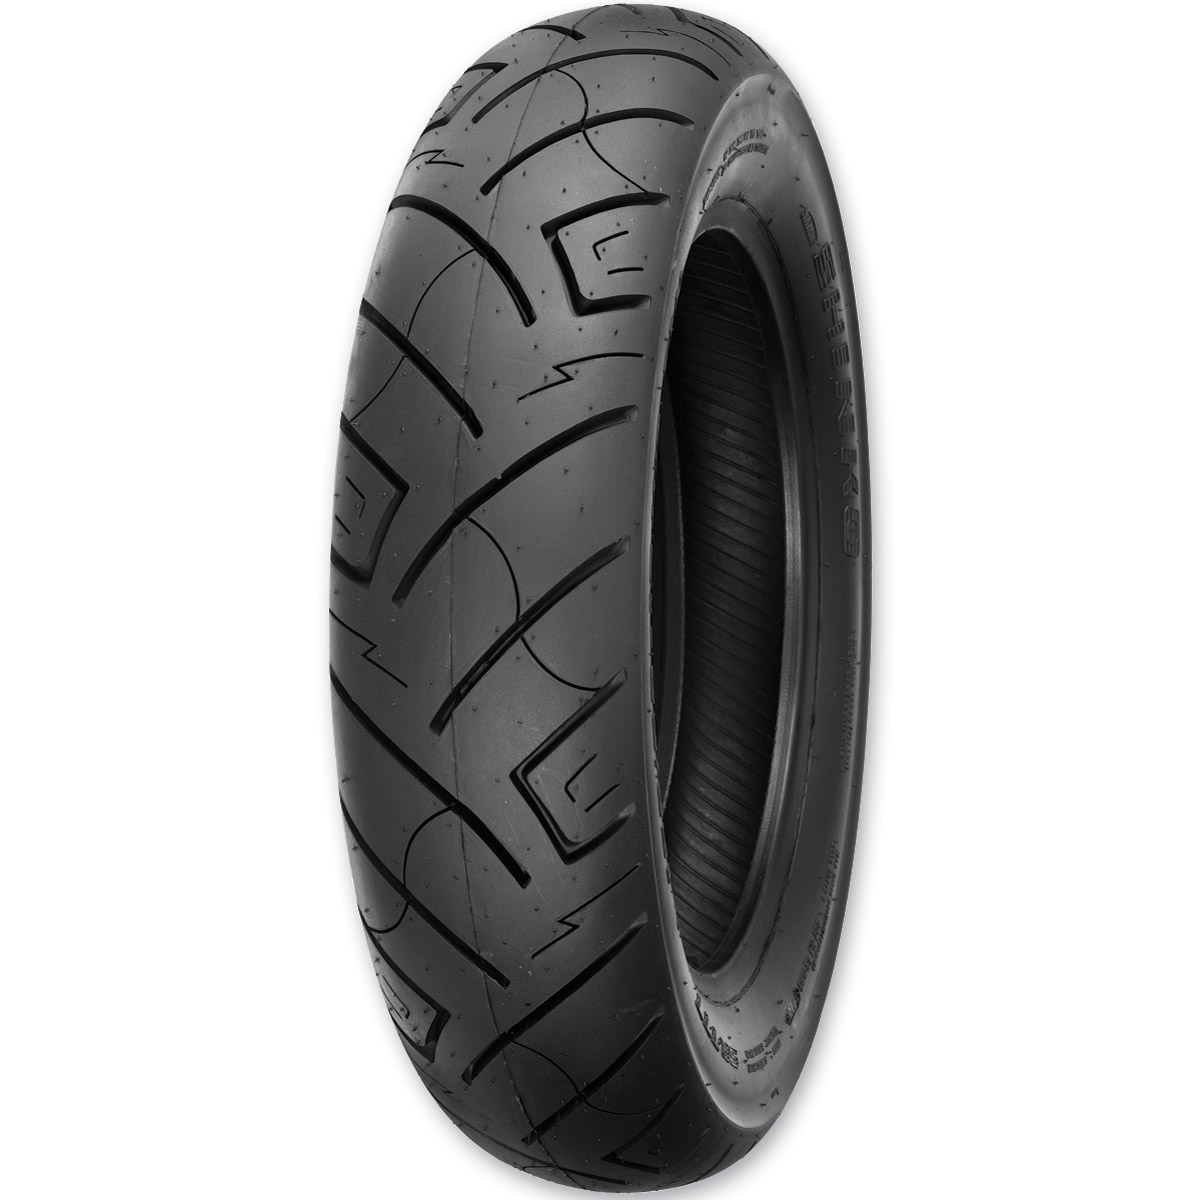 Shinko 777 MU85B16 Rear Tire